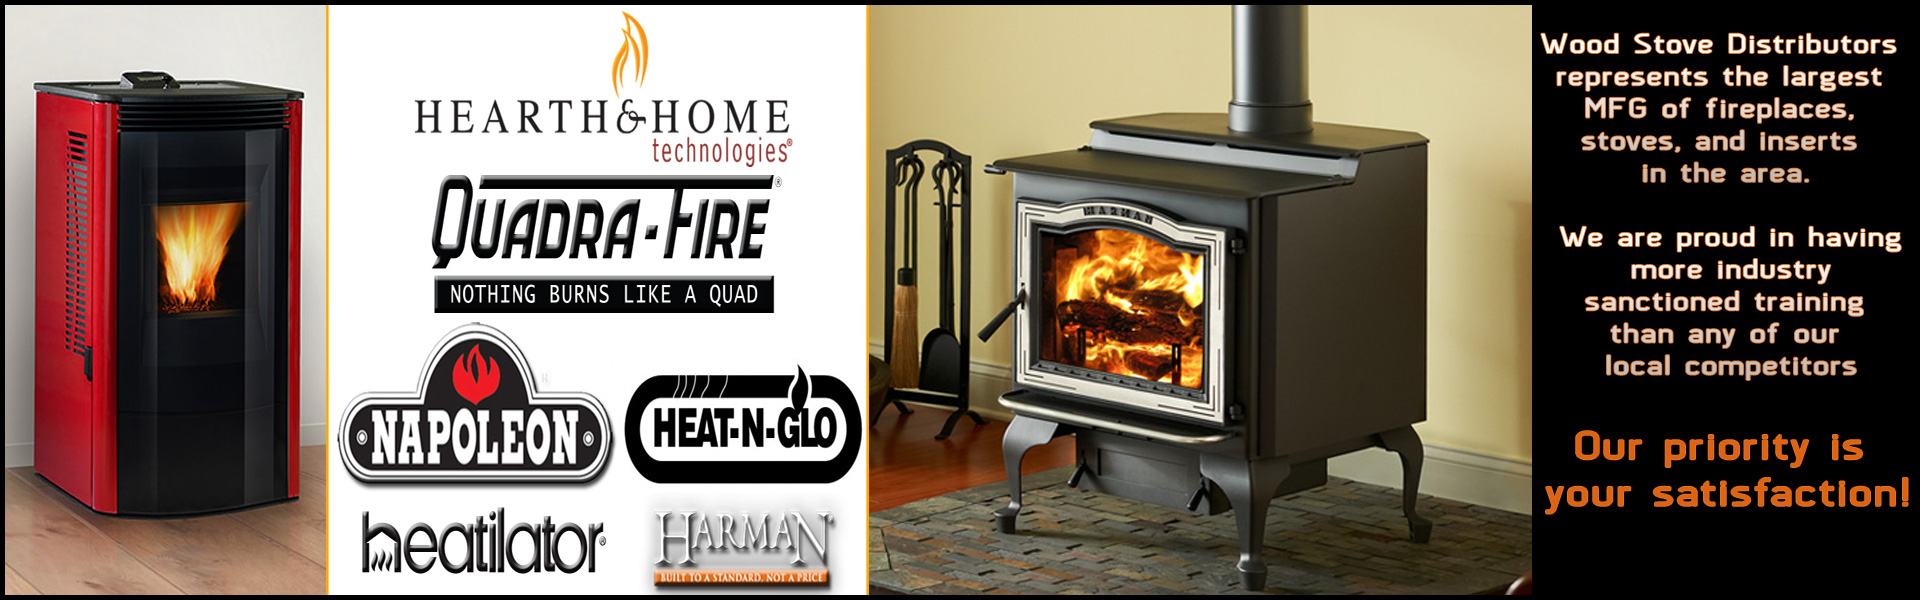 woodstove distributors inc